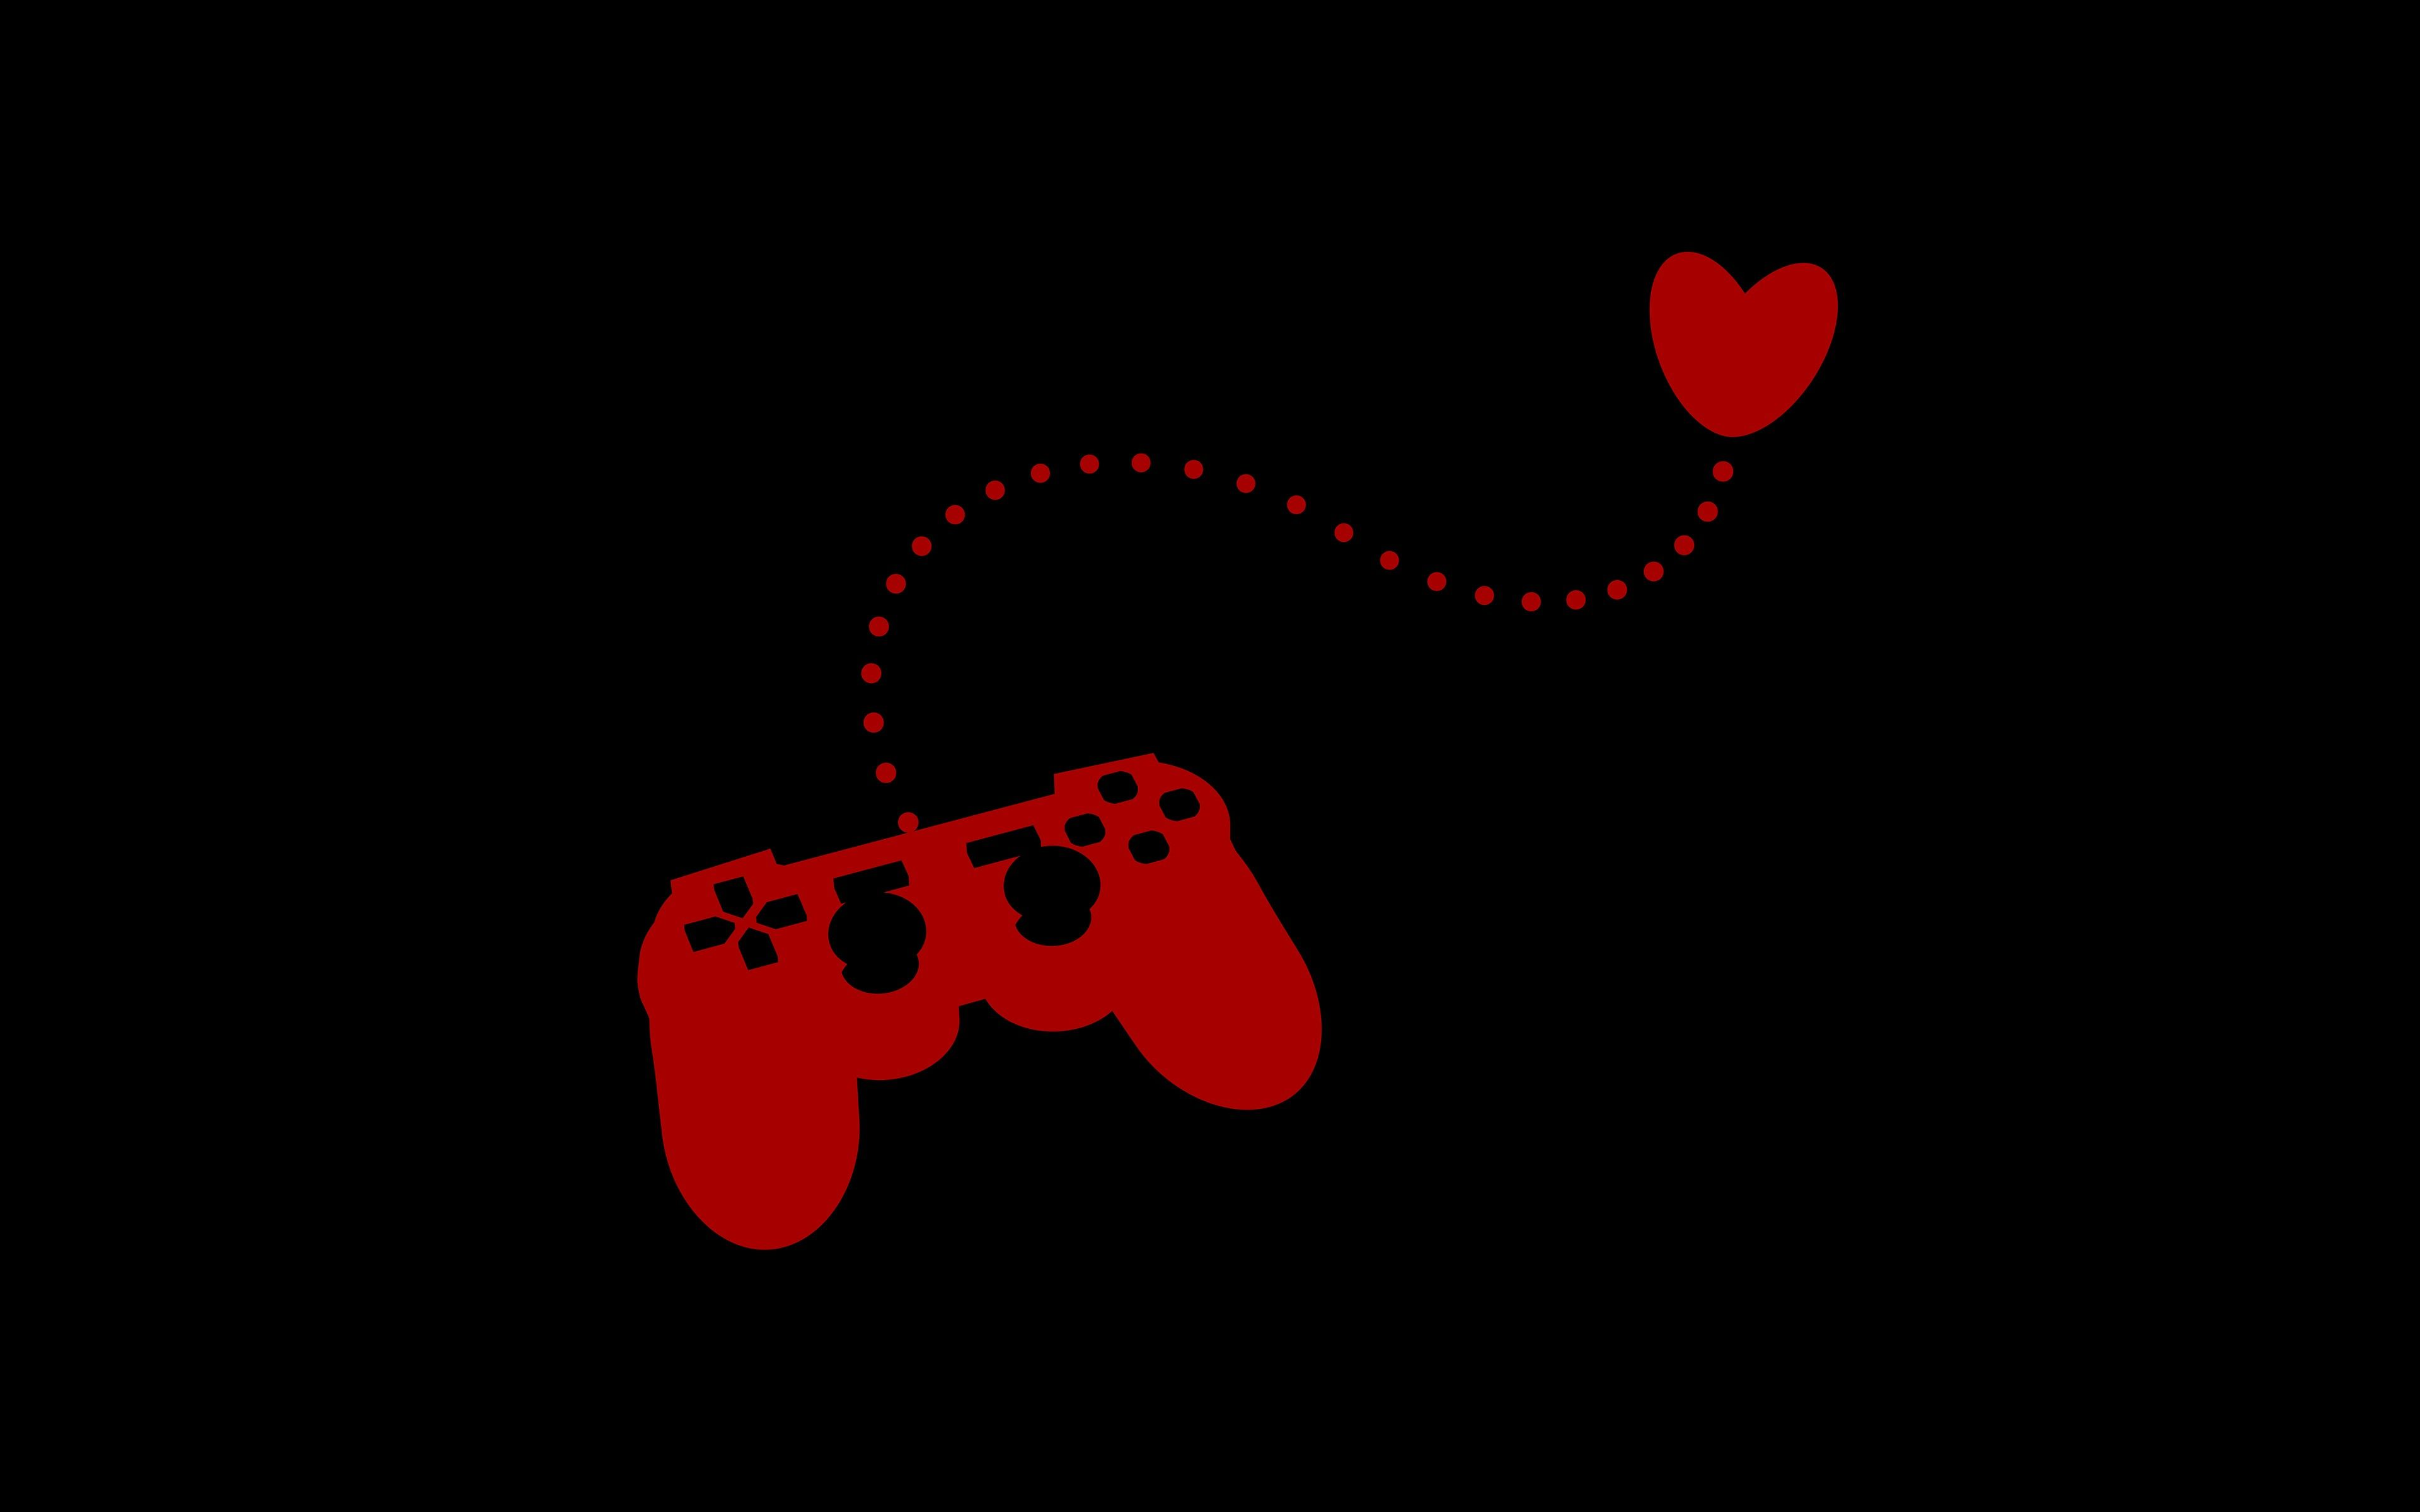 Gamepad Background Playstation Hd Wallpapers High Definition Wallpaper Desktop Wallpaper Playstation